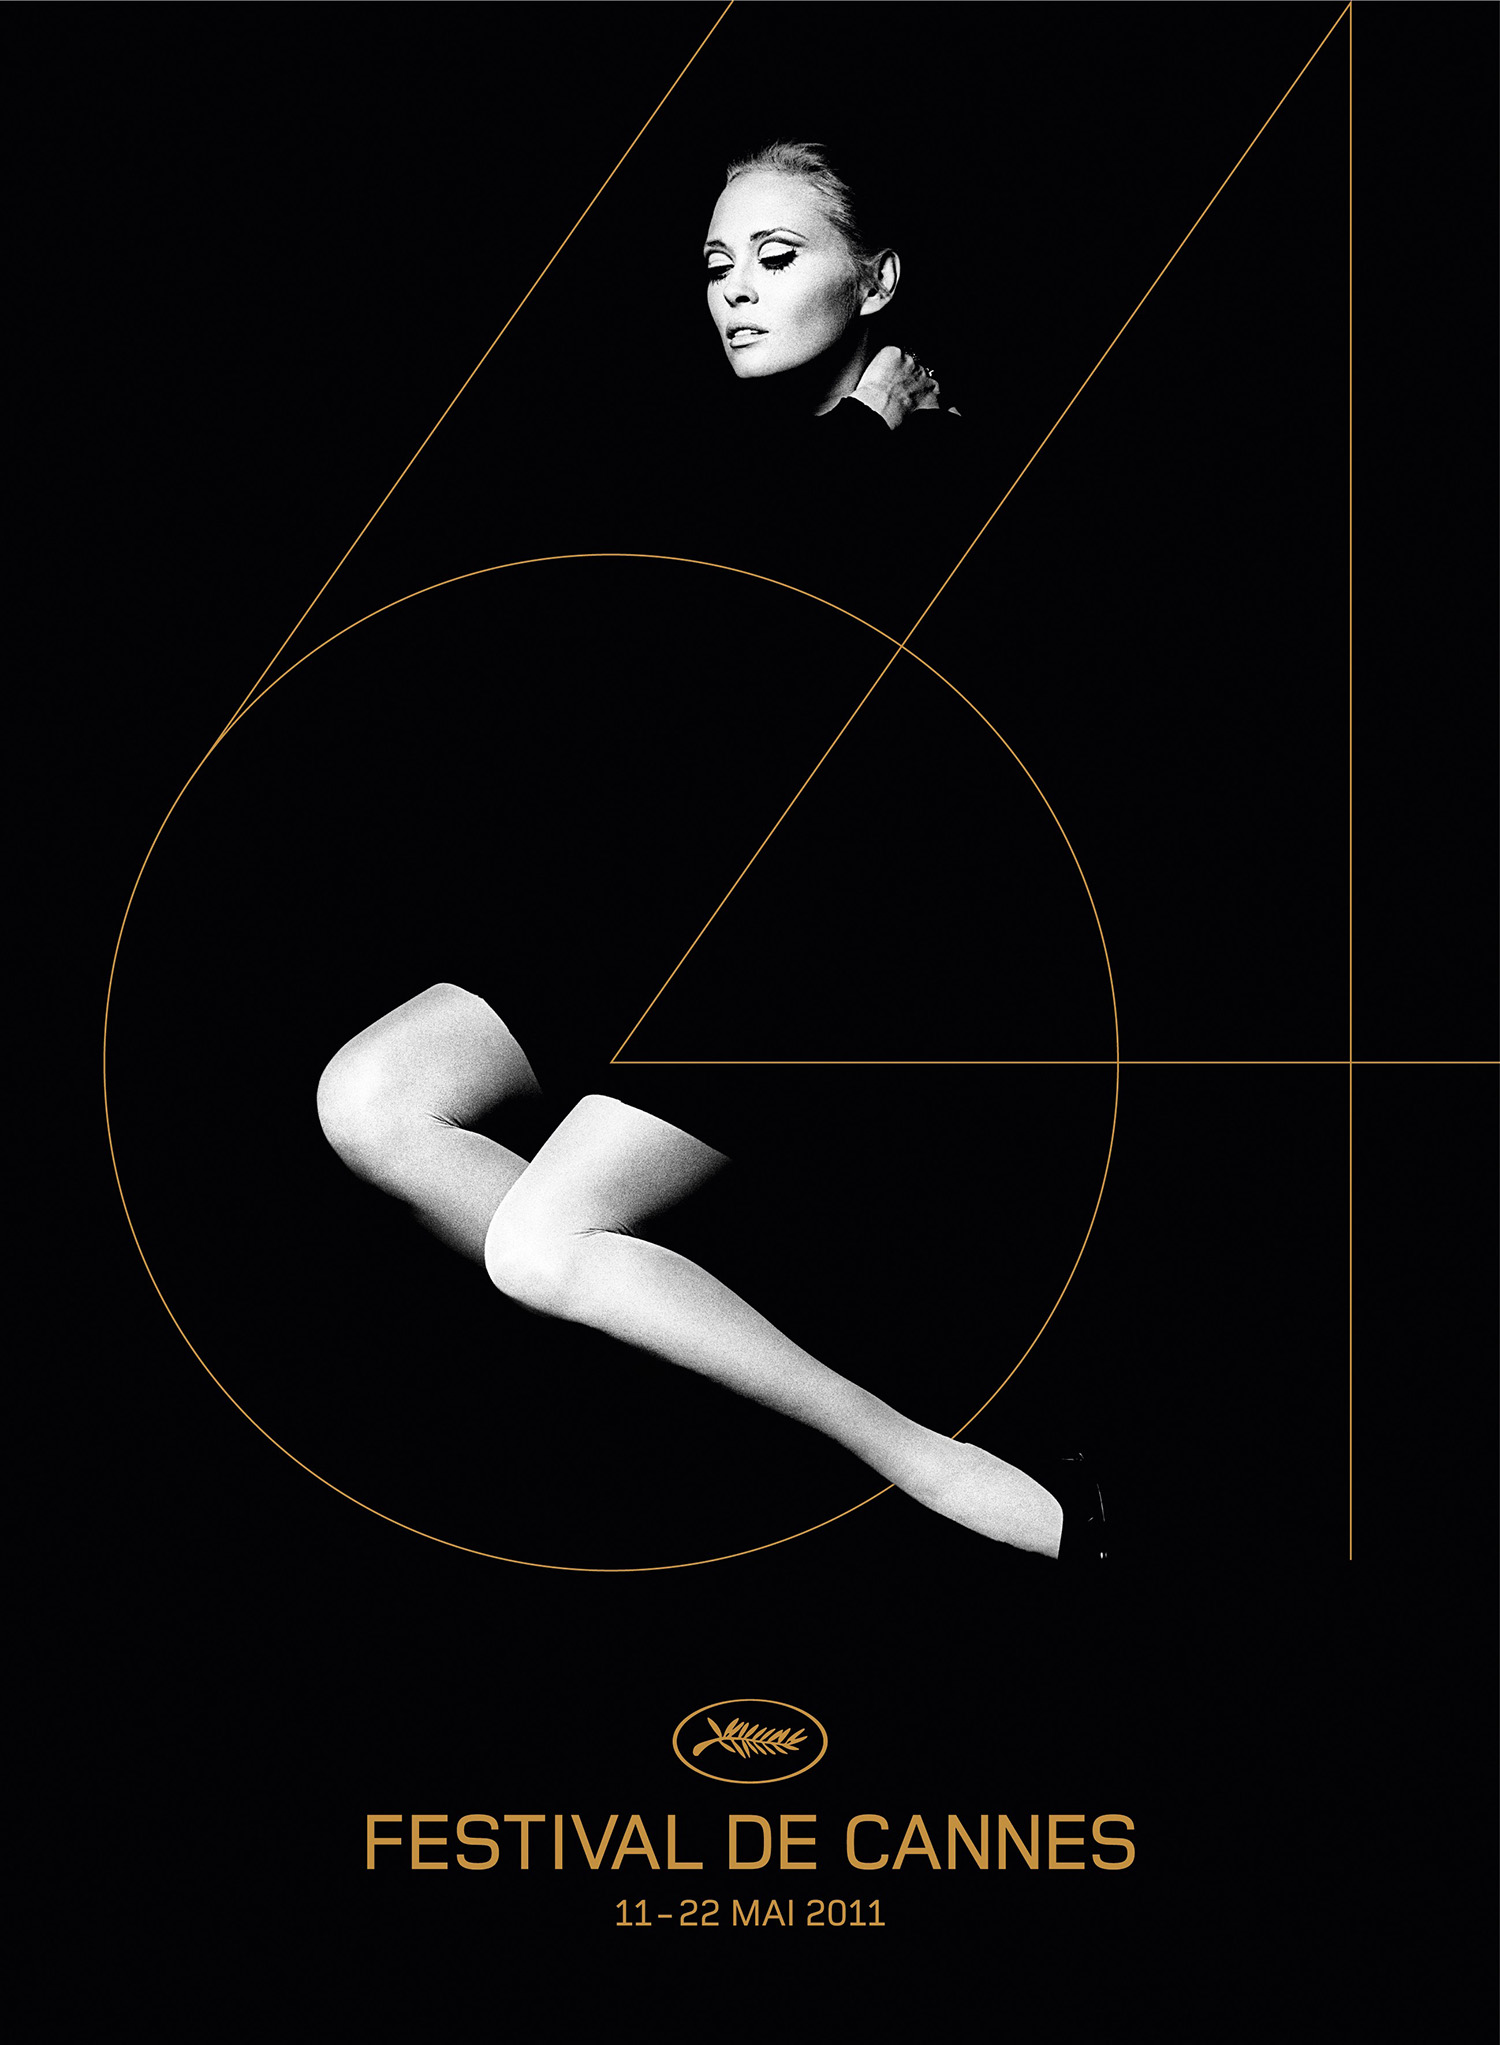 Cannes 2011 - L'affiche officielle